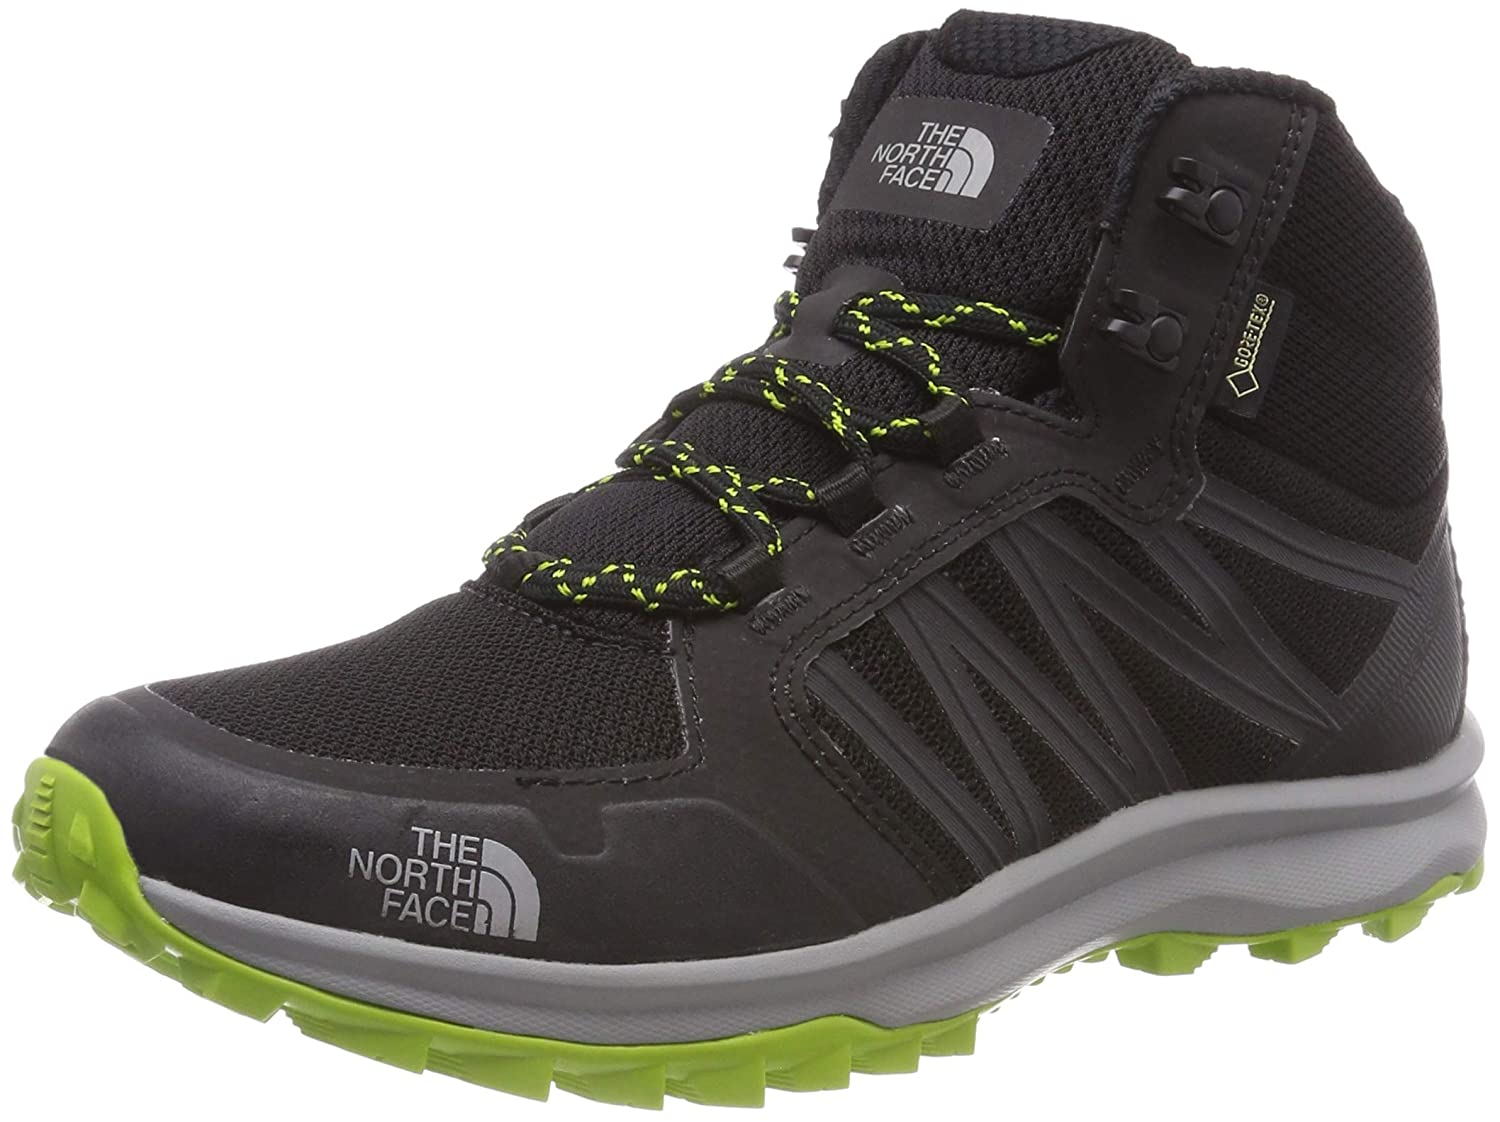 The North Face Litewave Fastpack Mid Gore-Tex, Botas de Senderismo para Hombre